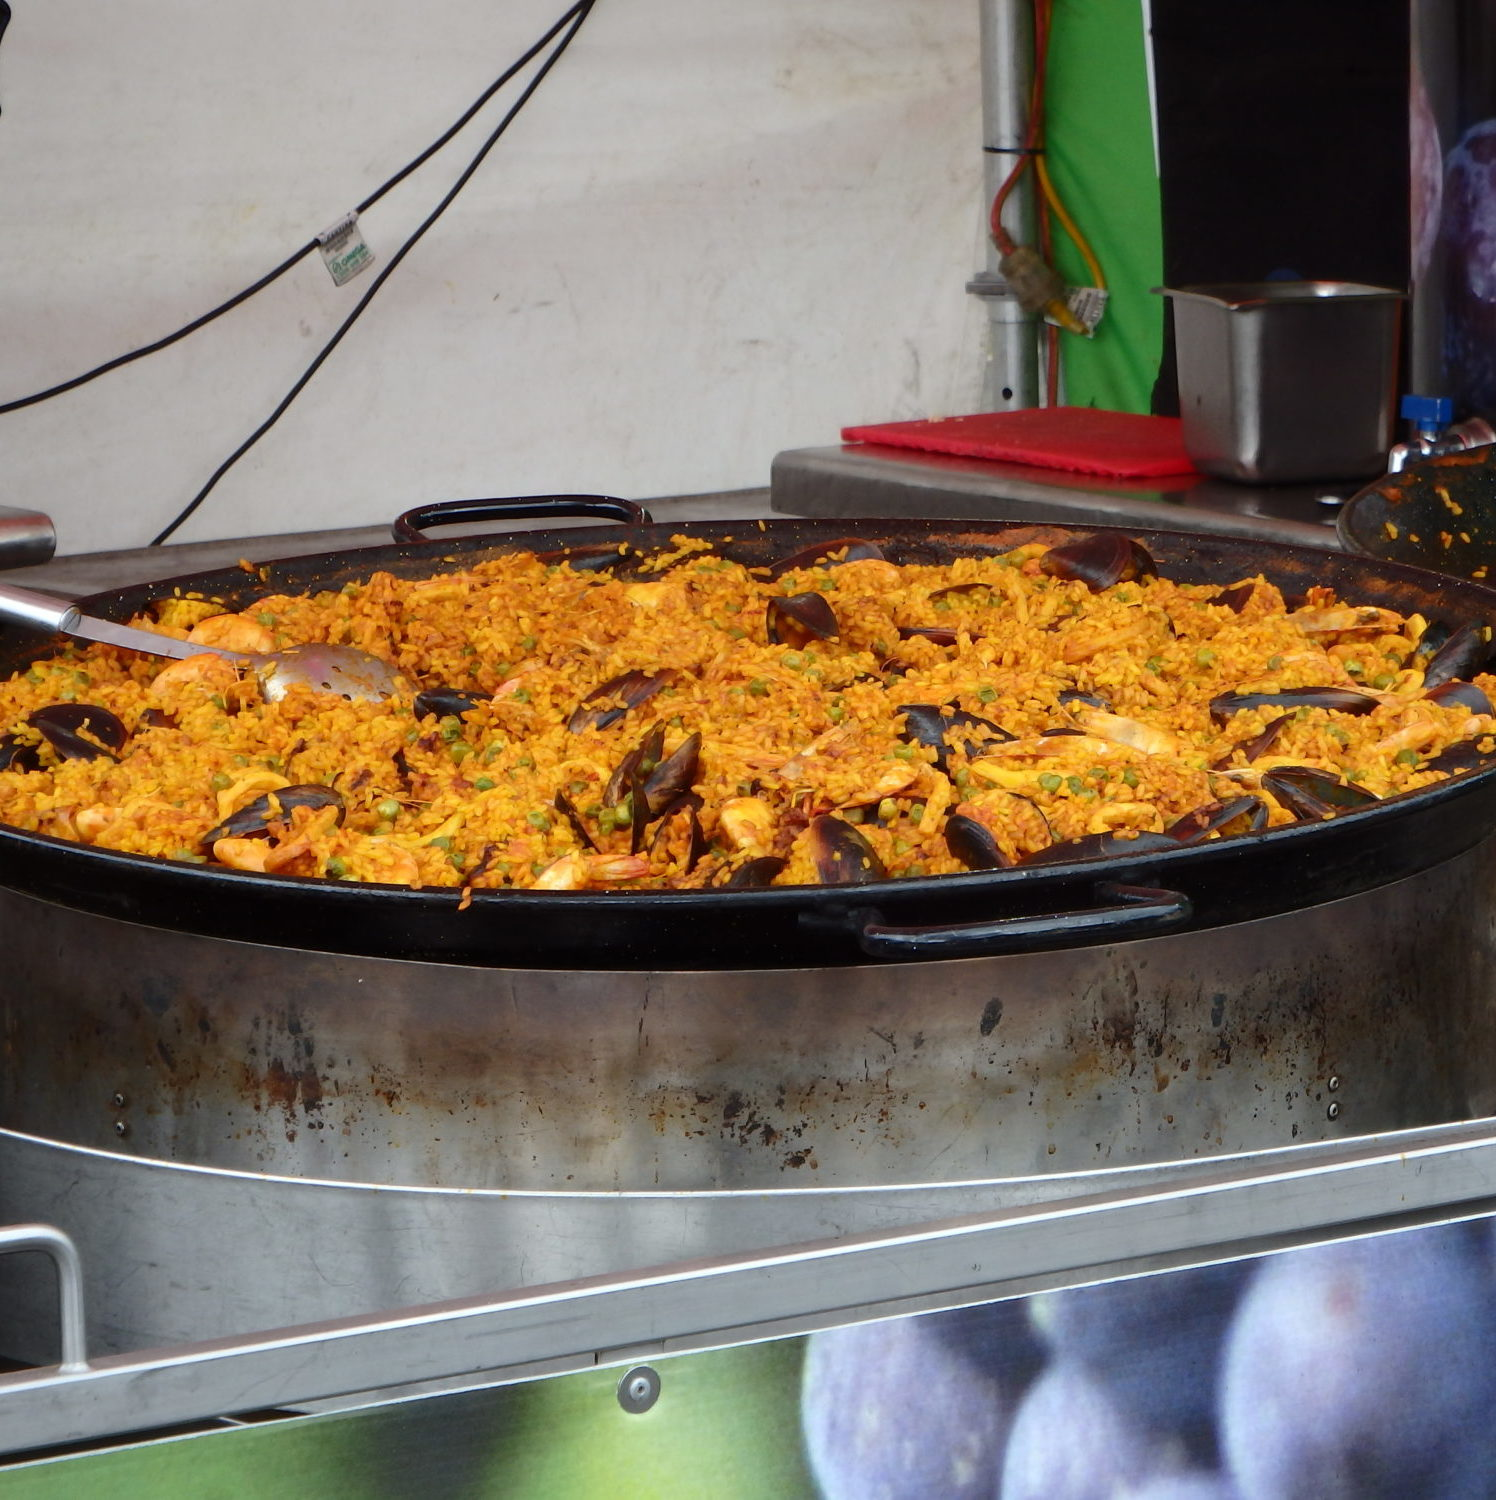 Delicious Paella sizzling in large pan